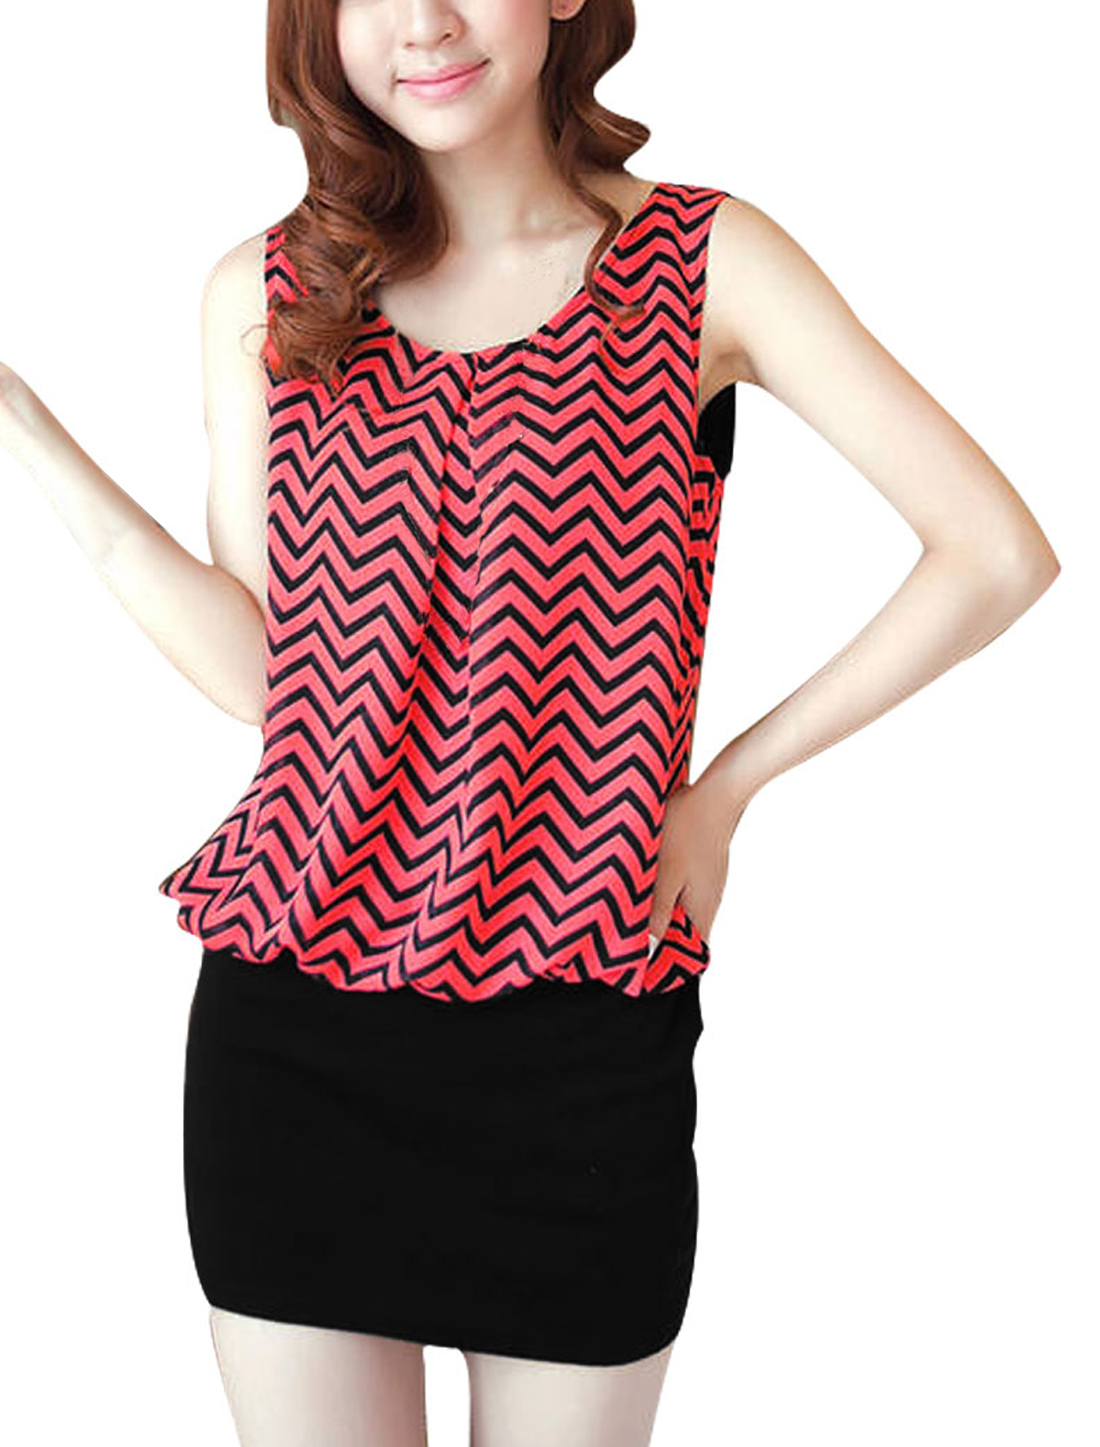 Ladies Chic Round Neck Orange Black Zig Zag Pattern Splice Mini Dress XS